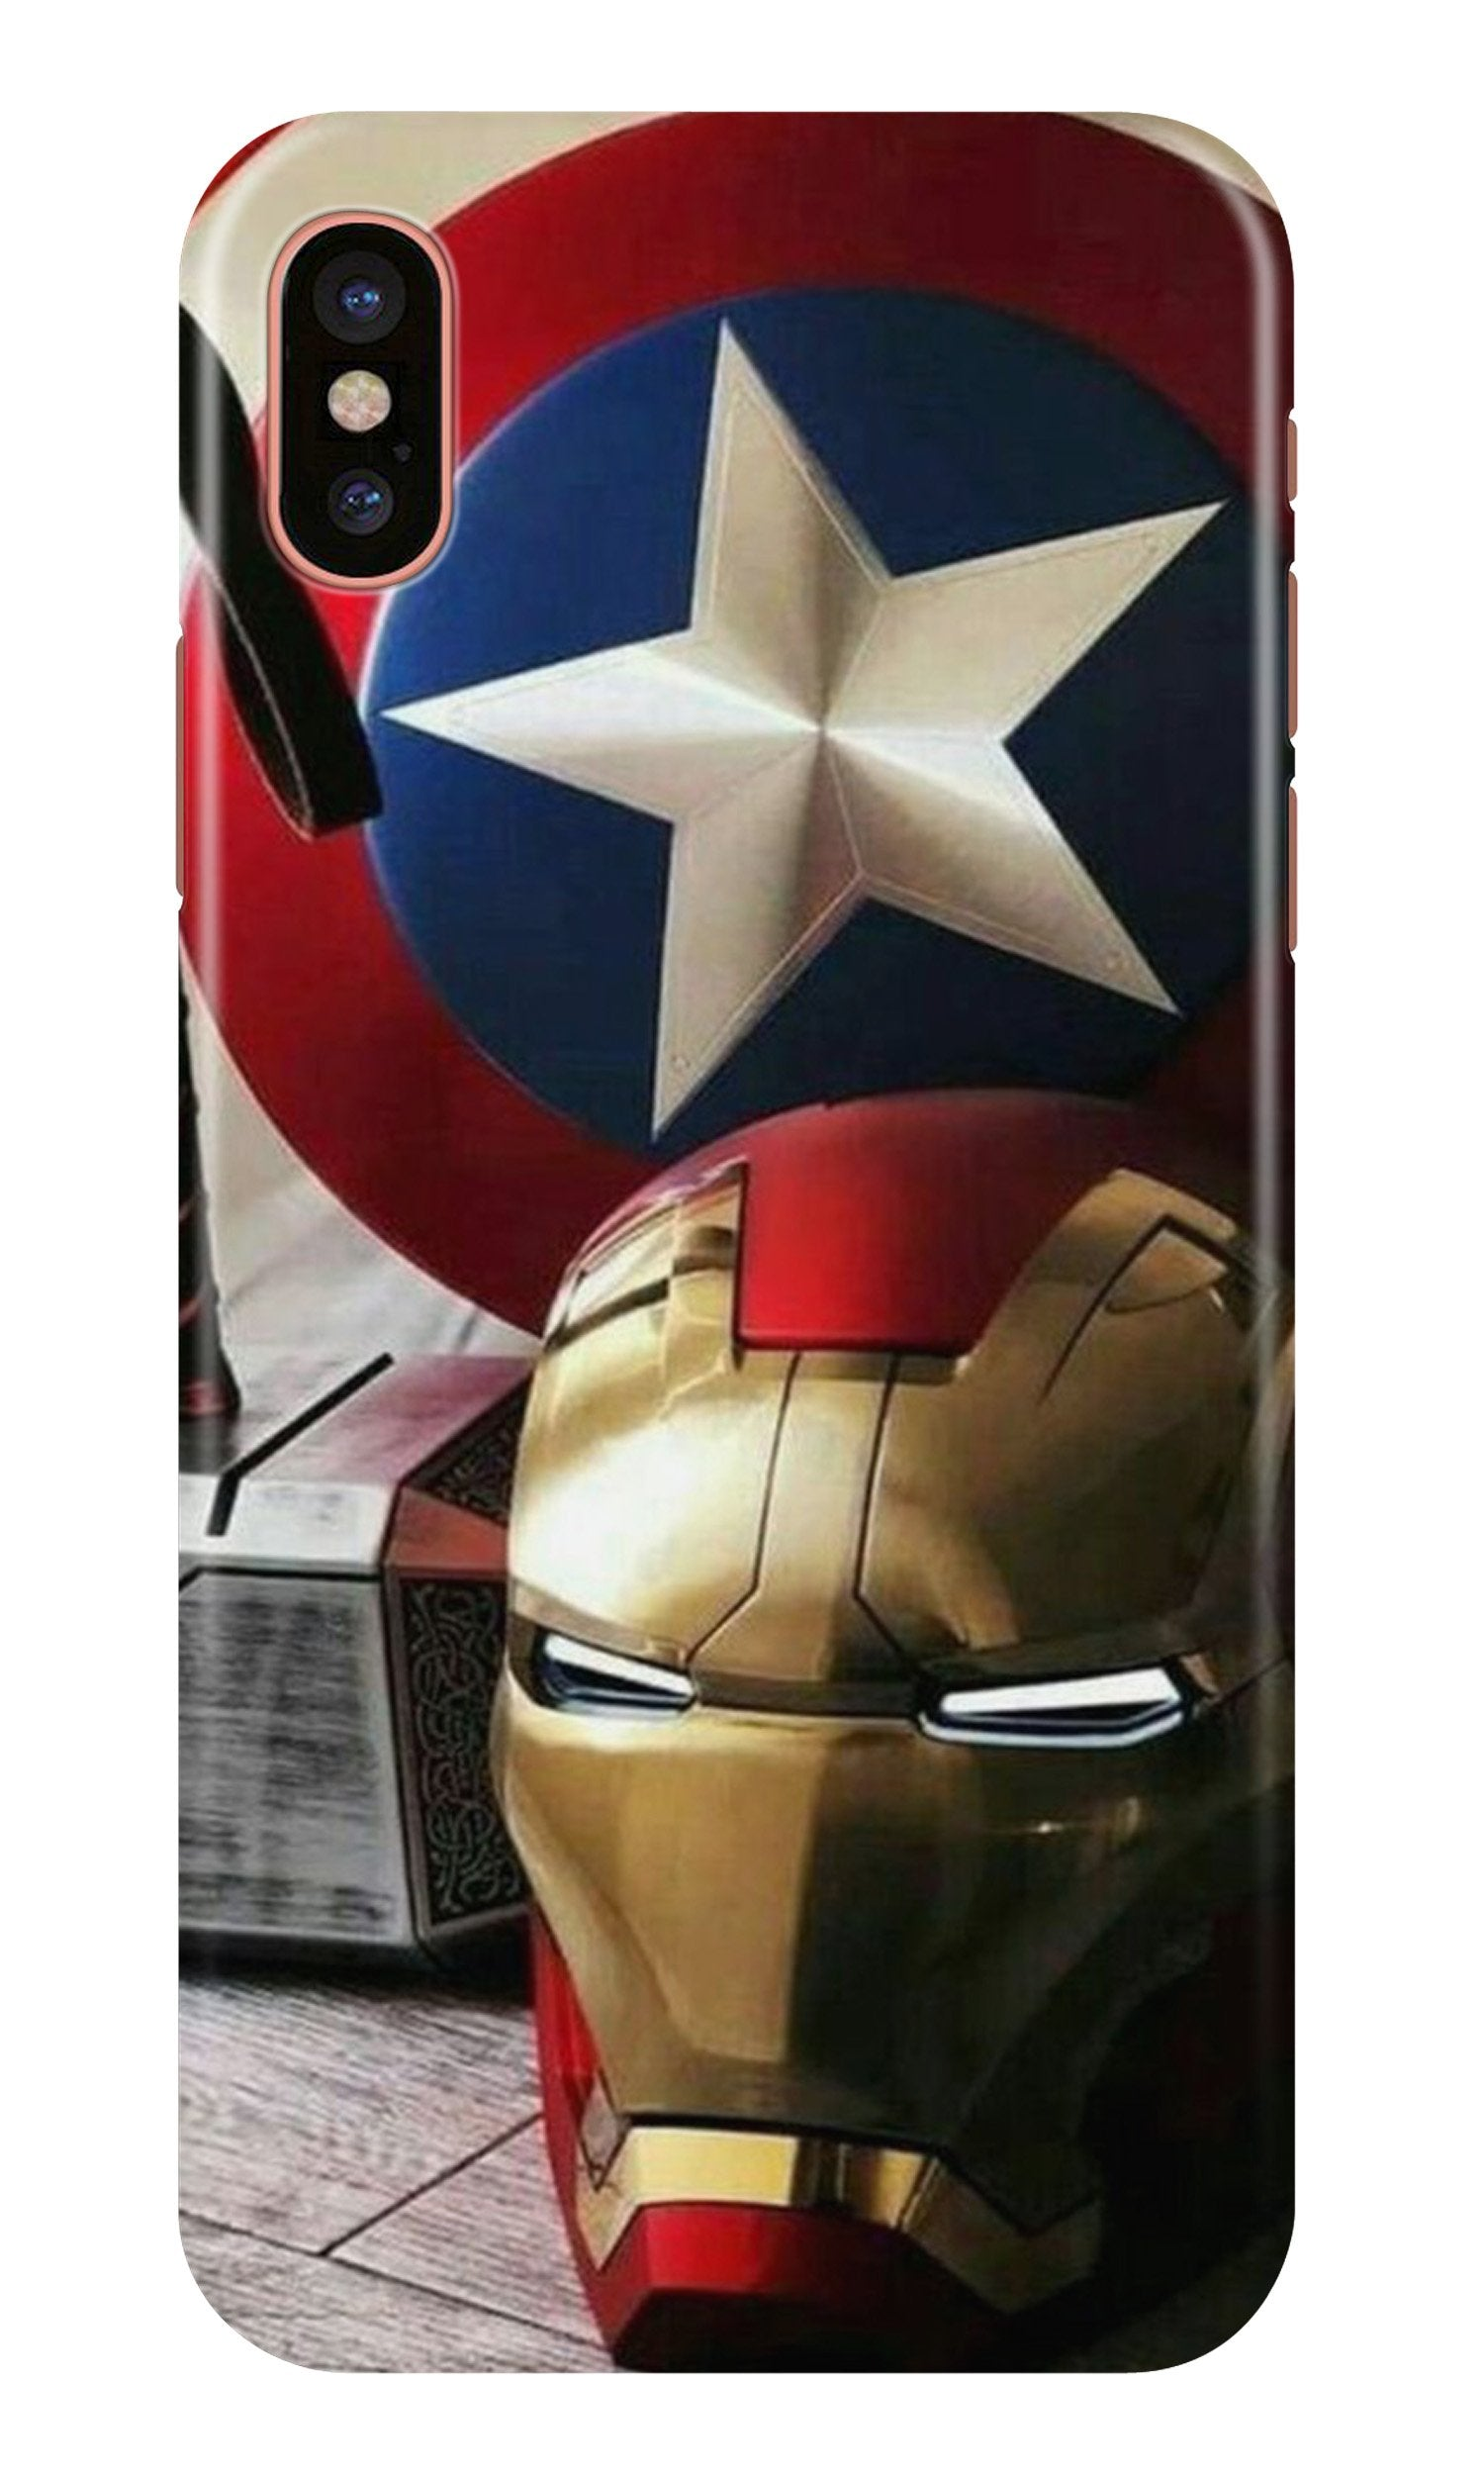 Ironman Captain America Case for iPhone Xr (Design No. 254)